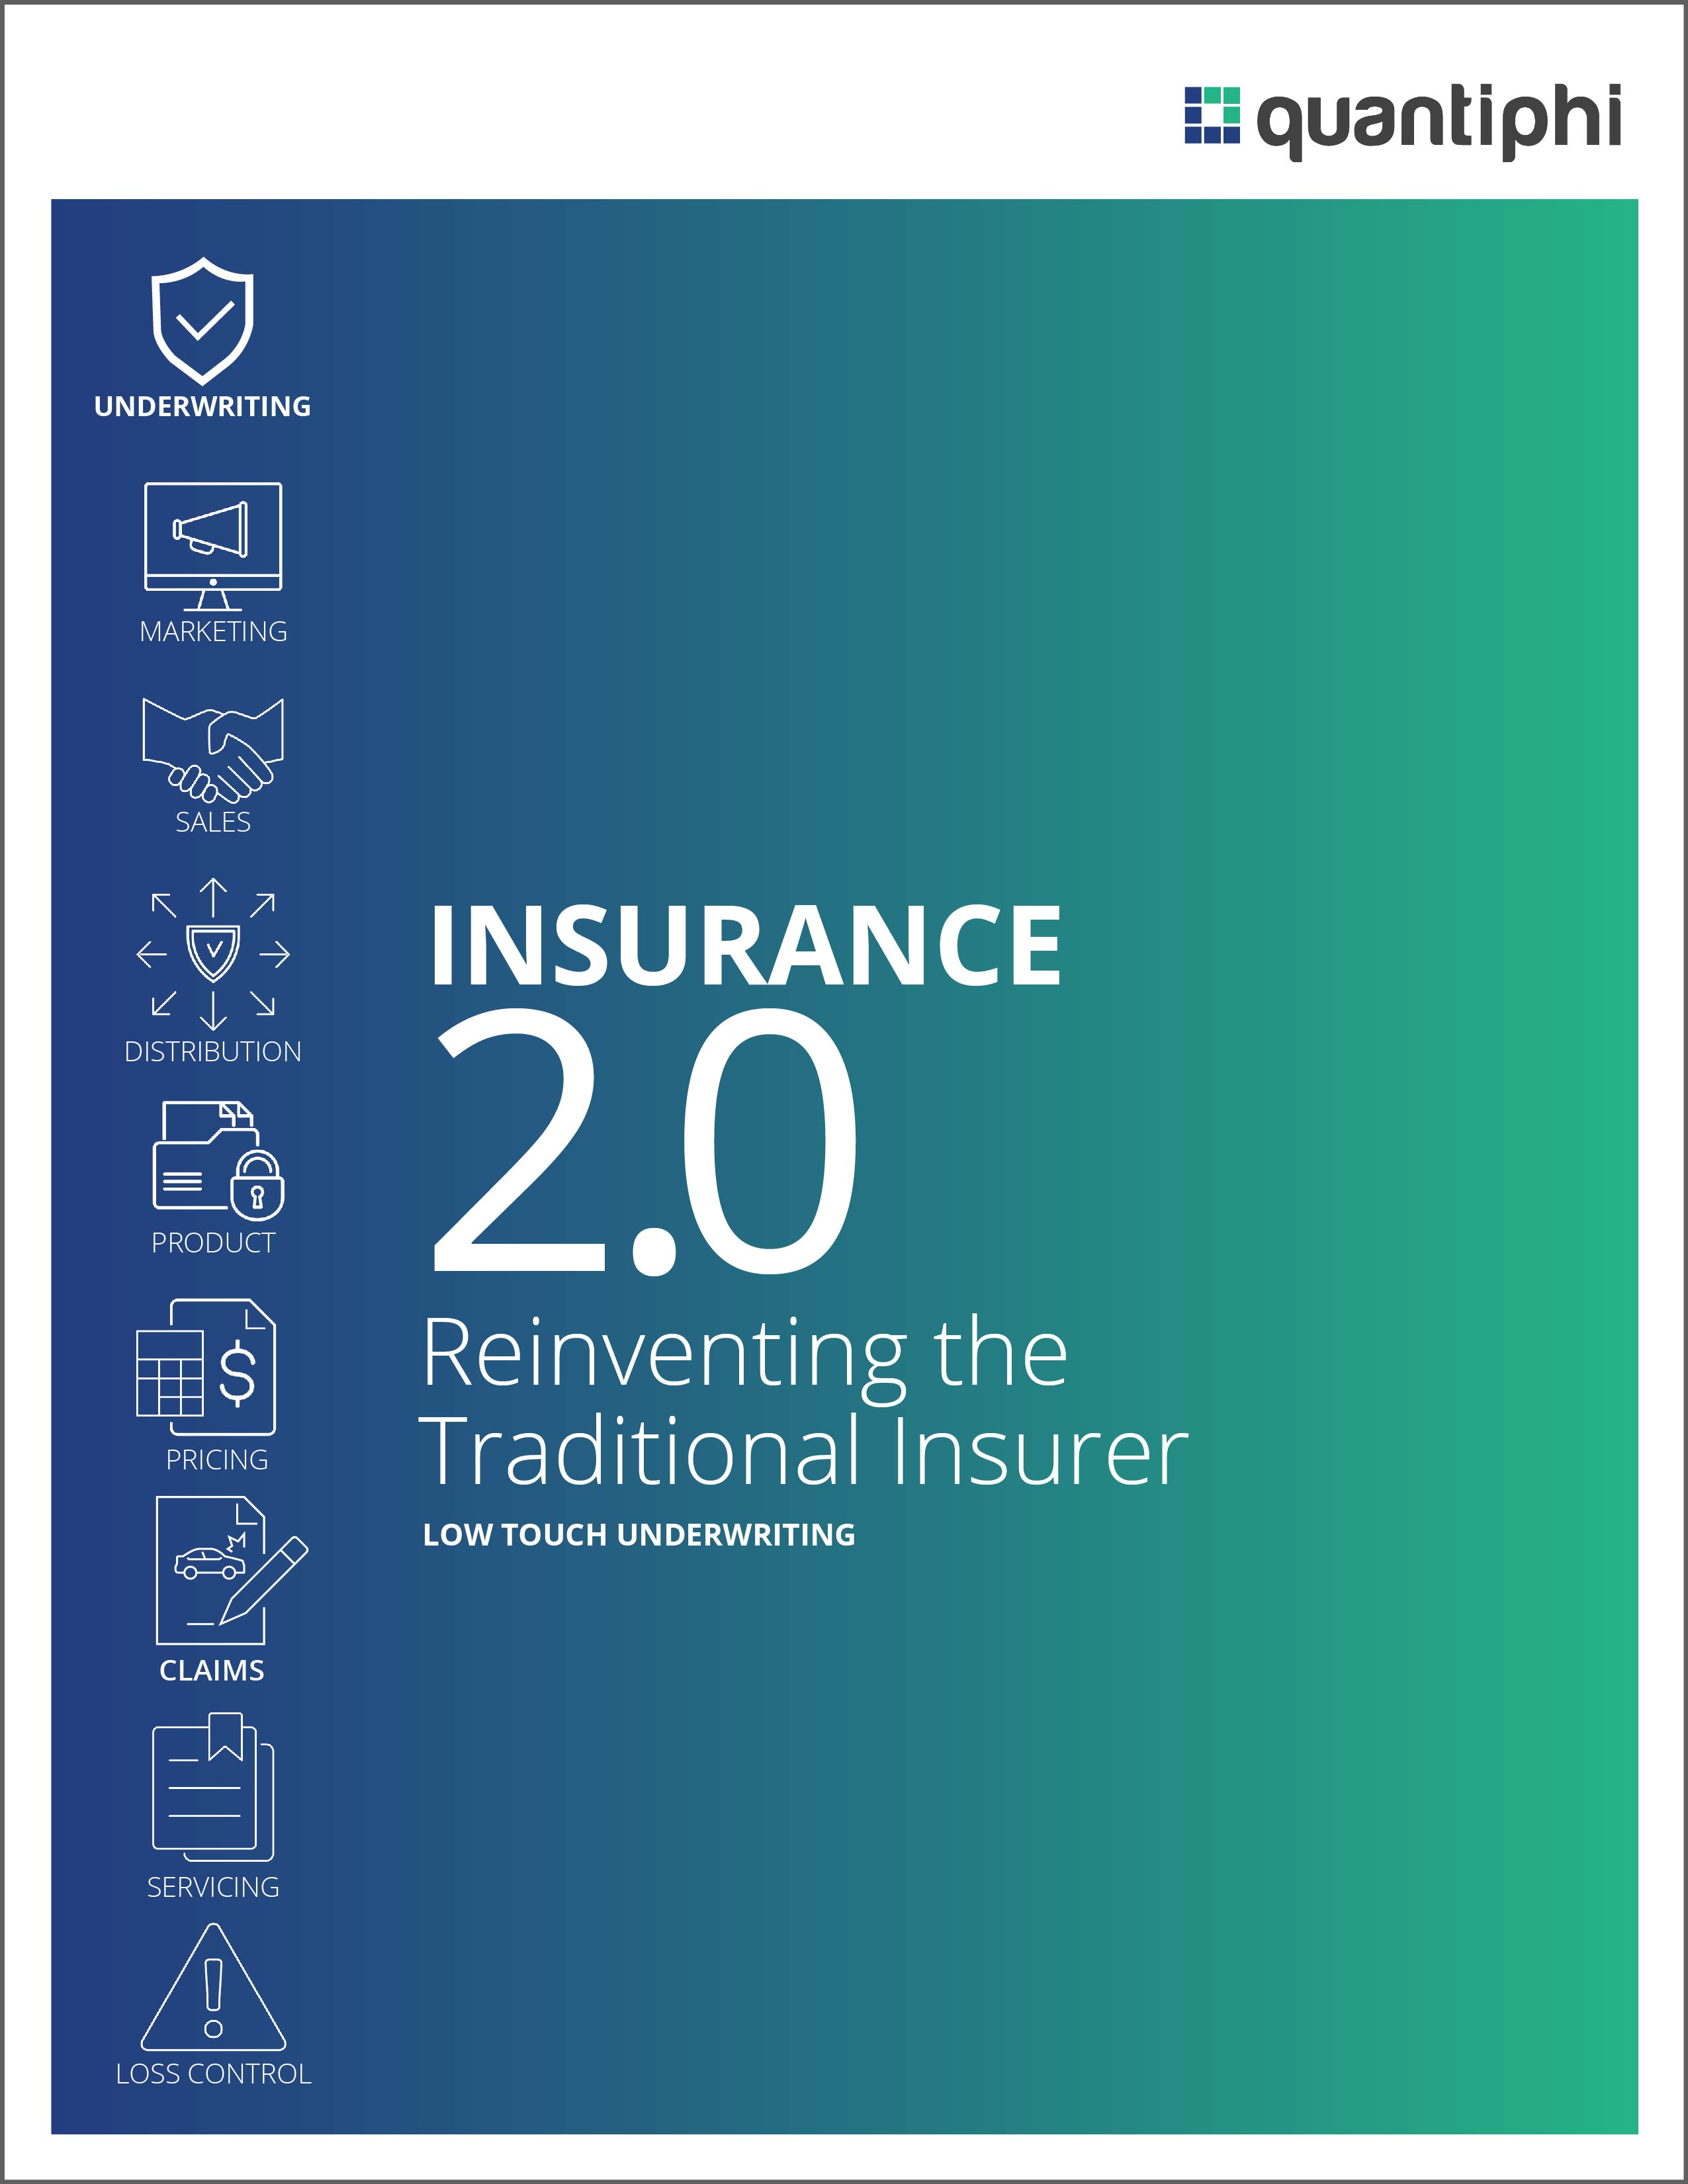 Quantiphi_Insurance_eGuide_low touch underwriting-01 (1)